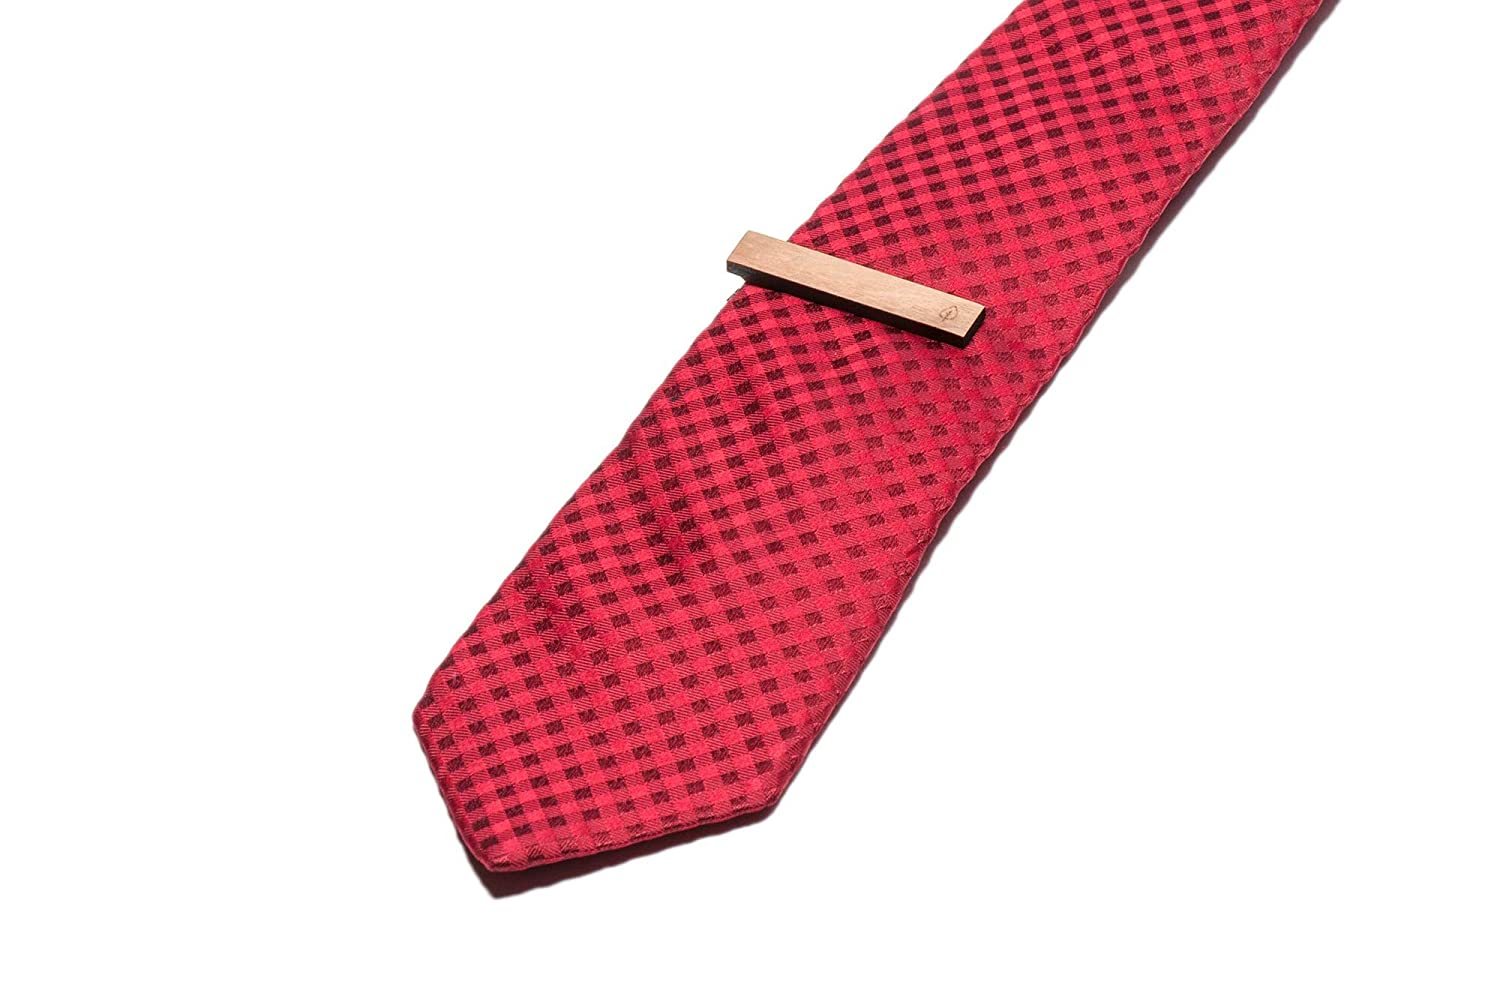 Wooden Accessories Company Wooden Tie Clips with Laser Engraved Aspen Design Cherry Wood Tie Bar Engraved in The USA